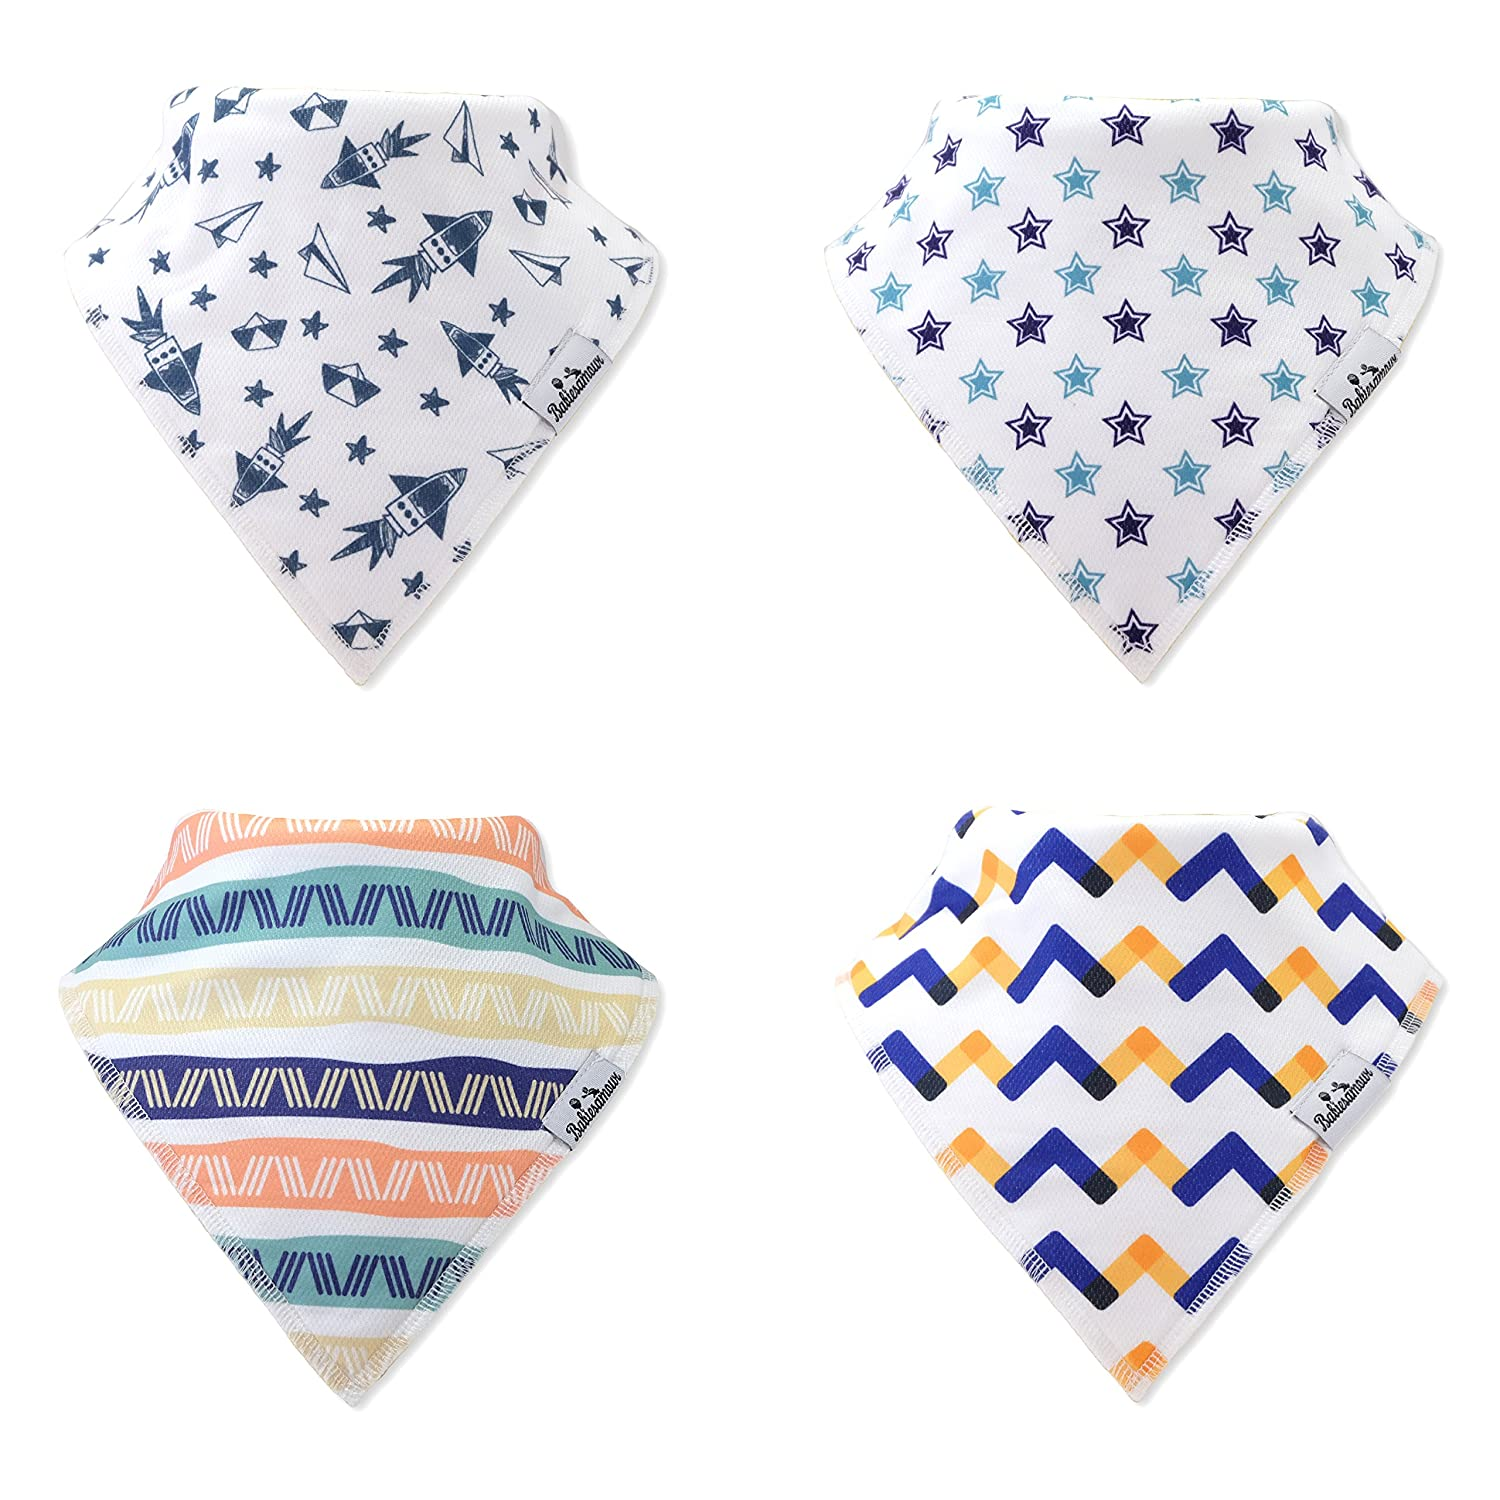 BabiesAmour 4 Pack Bandana Baby Boy and Girl Bibs (Style 16) - Extra Soft and Quickly Dry Burp, Eating and Drool Bib for Newborn, Infant and Toddler - Food Catcher, Teething and Led Weaning Cloths